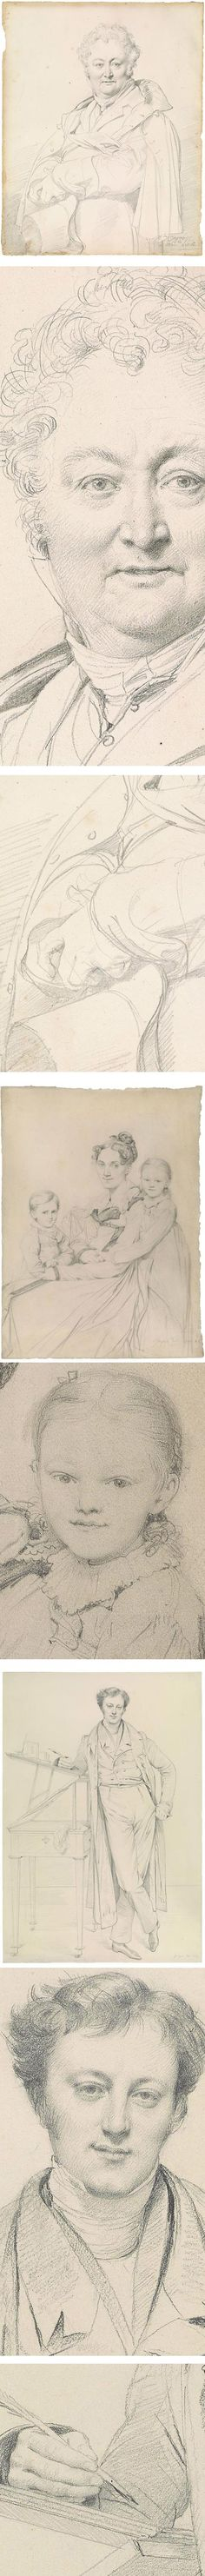 Ingres at the Morgan, graphite drawings of Jean-Auguste-Dominique Ingres